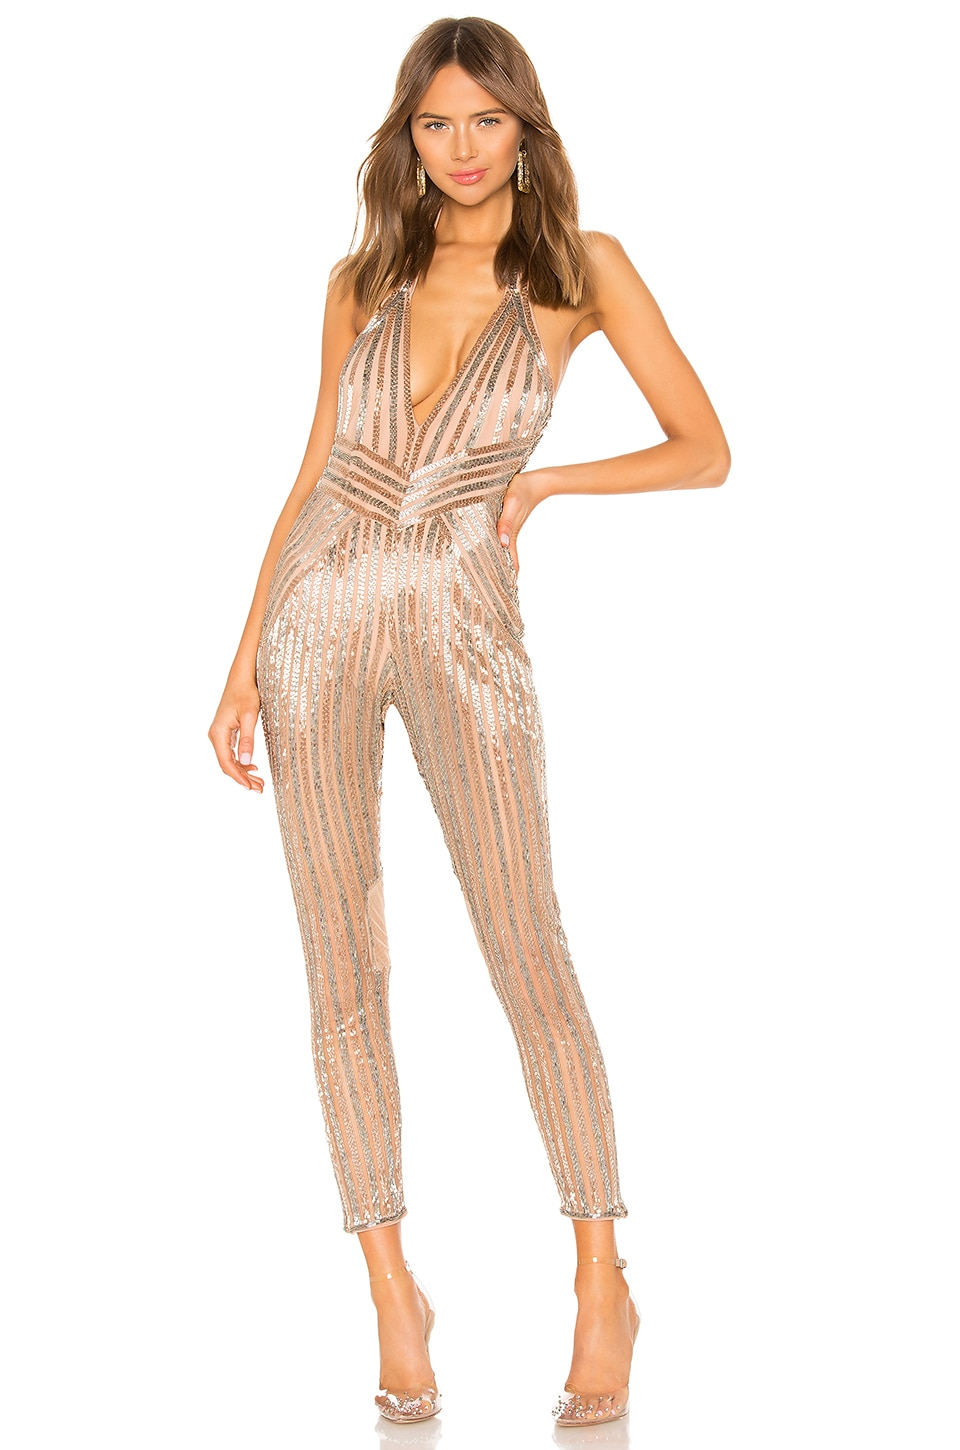 X by NBD Vanessa Jumpsuit in Silver & Champagne